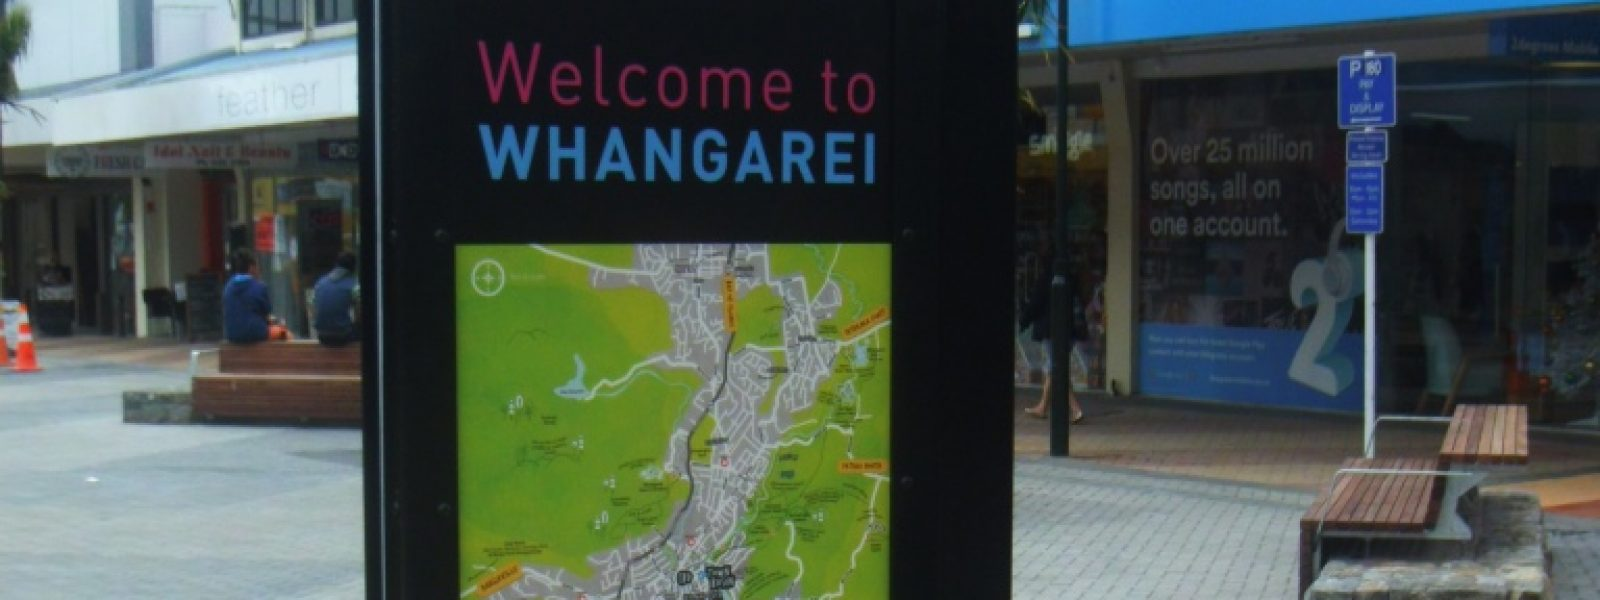 Way-finding Plinths for Whangarei CBD